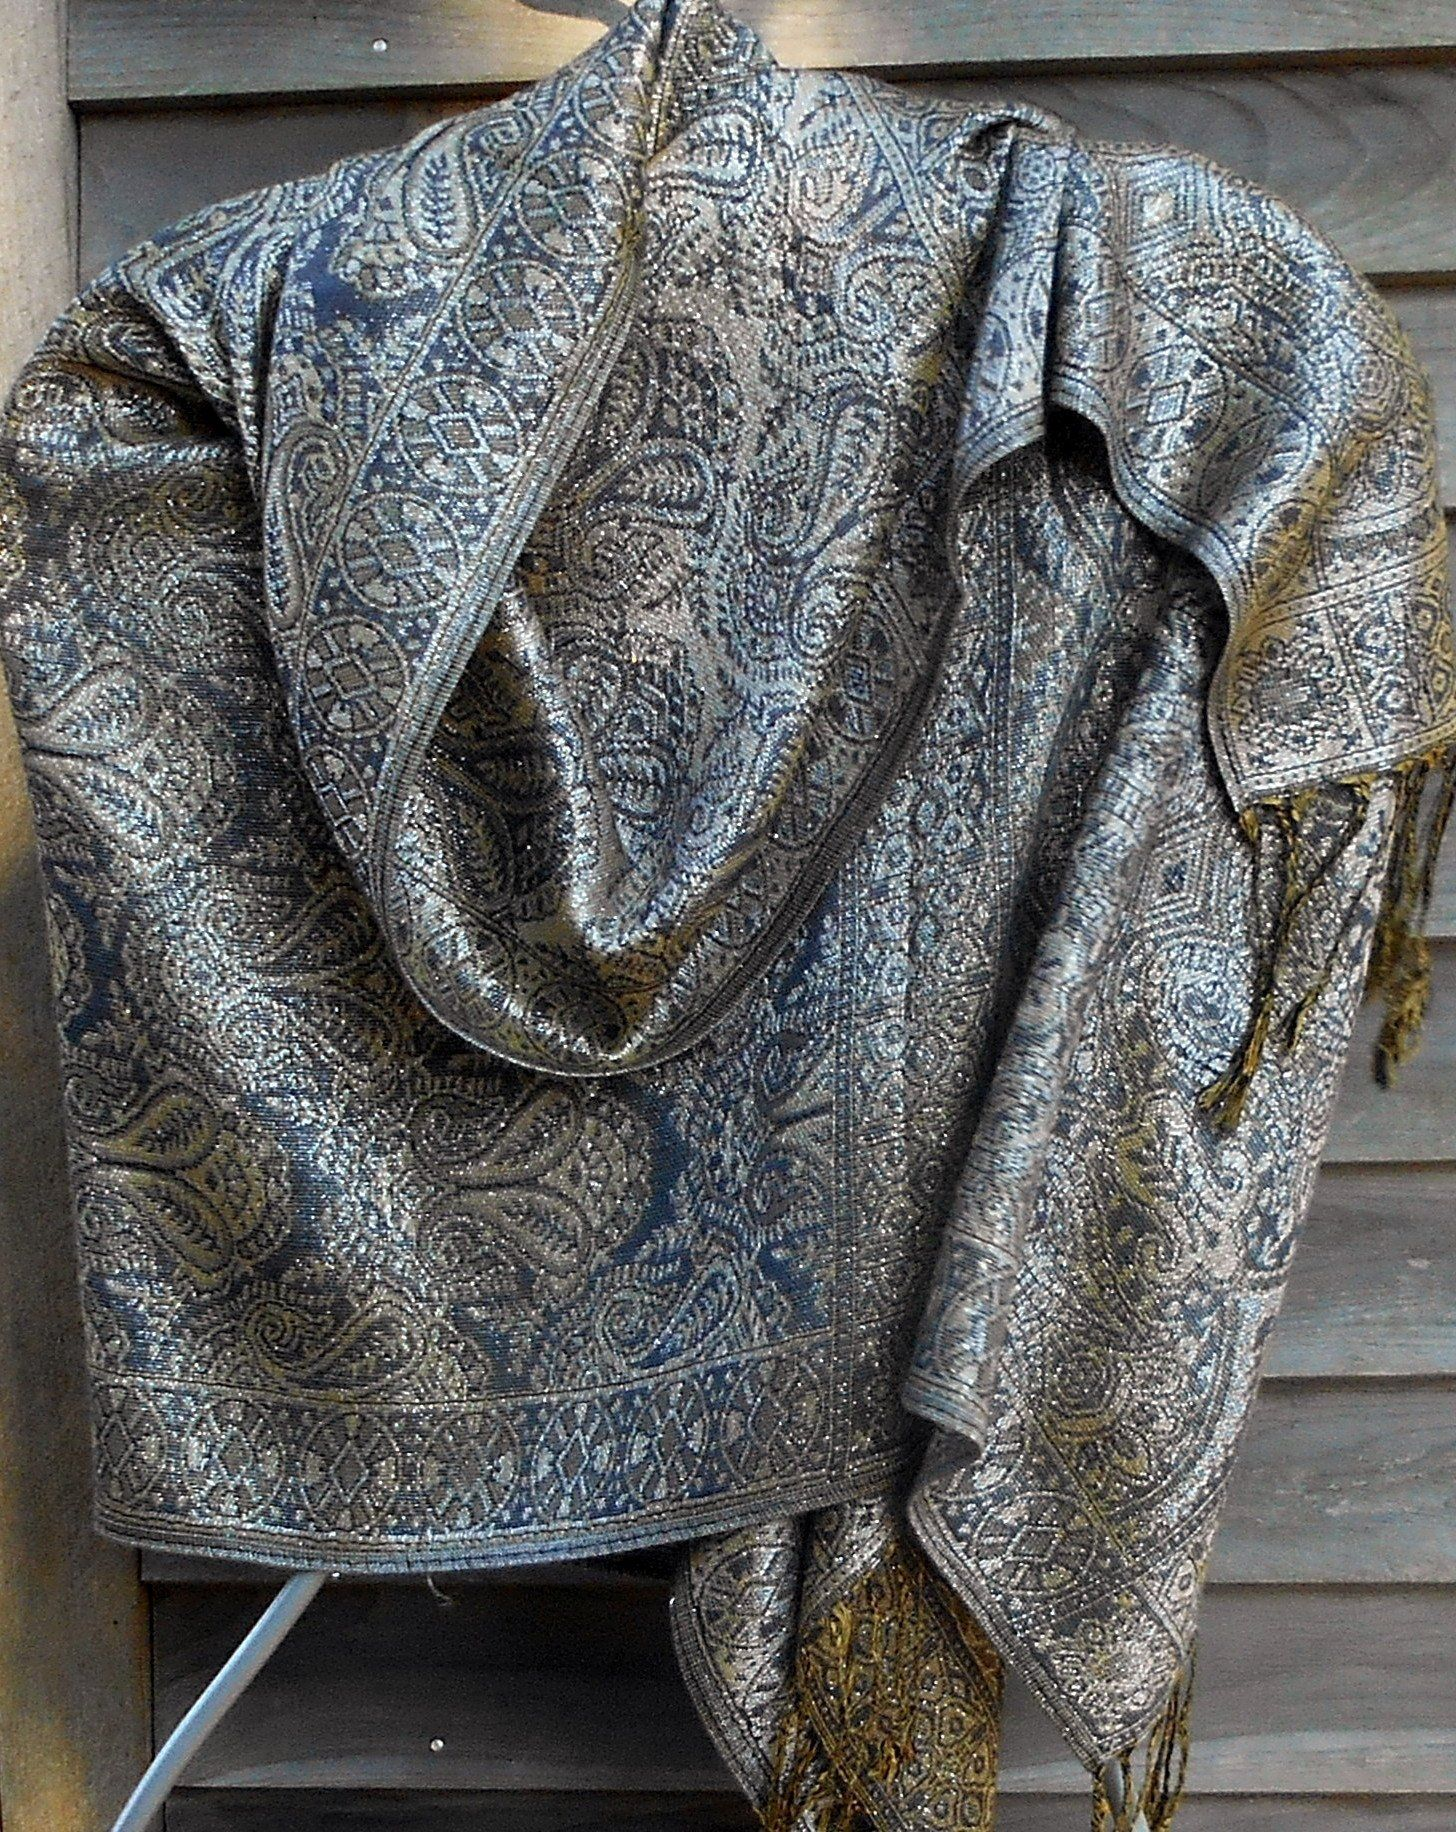 4daf423ad Festival Pashmina,Cashmere Shawl,Blanket Scarf,Gray and Silver Shawl,  Paisley Pashmina,Rave shawl,, Mother of the Bride Shawl,Formal wear by  Lambfeathers on ...